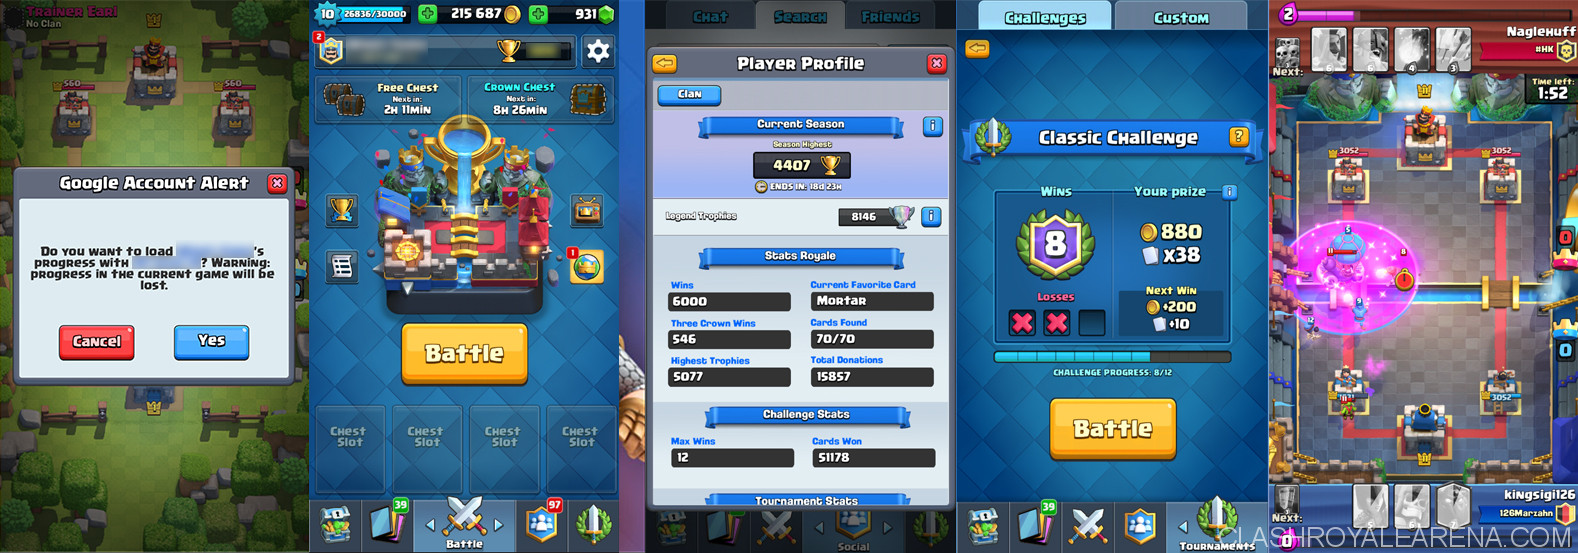 clash royale pc gameplay on bluestacks